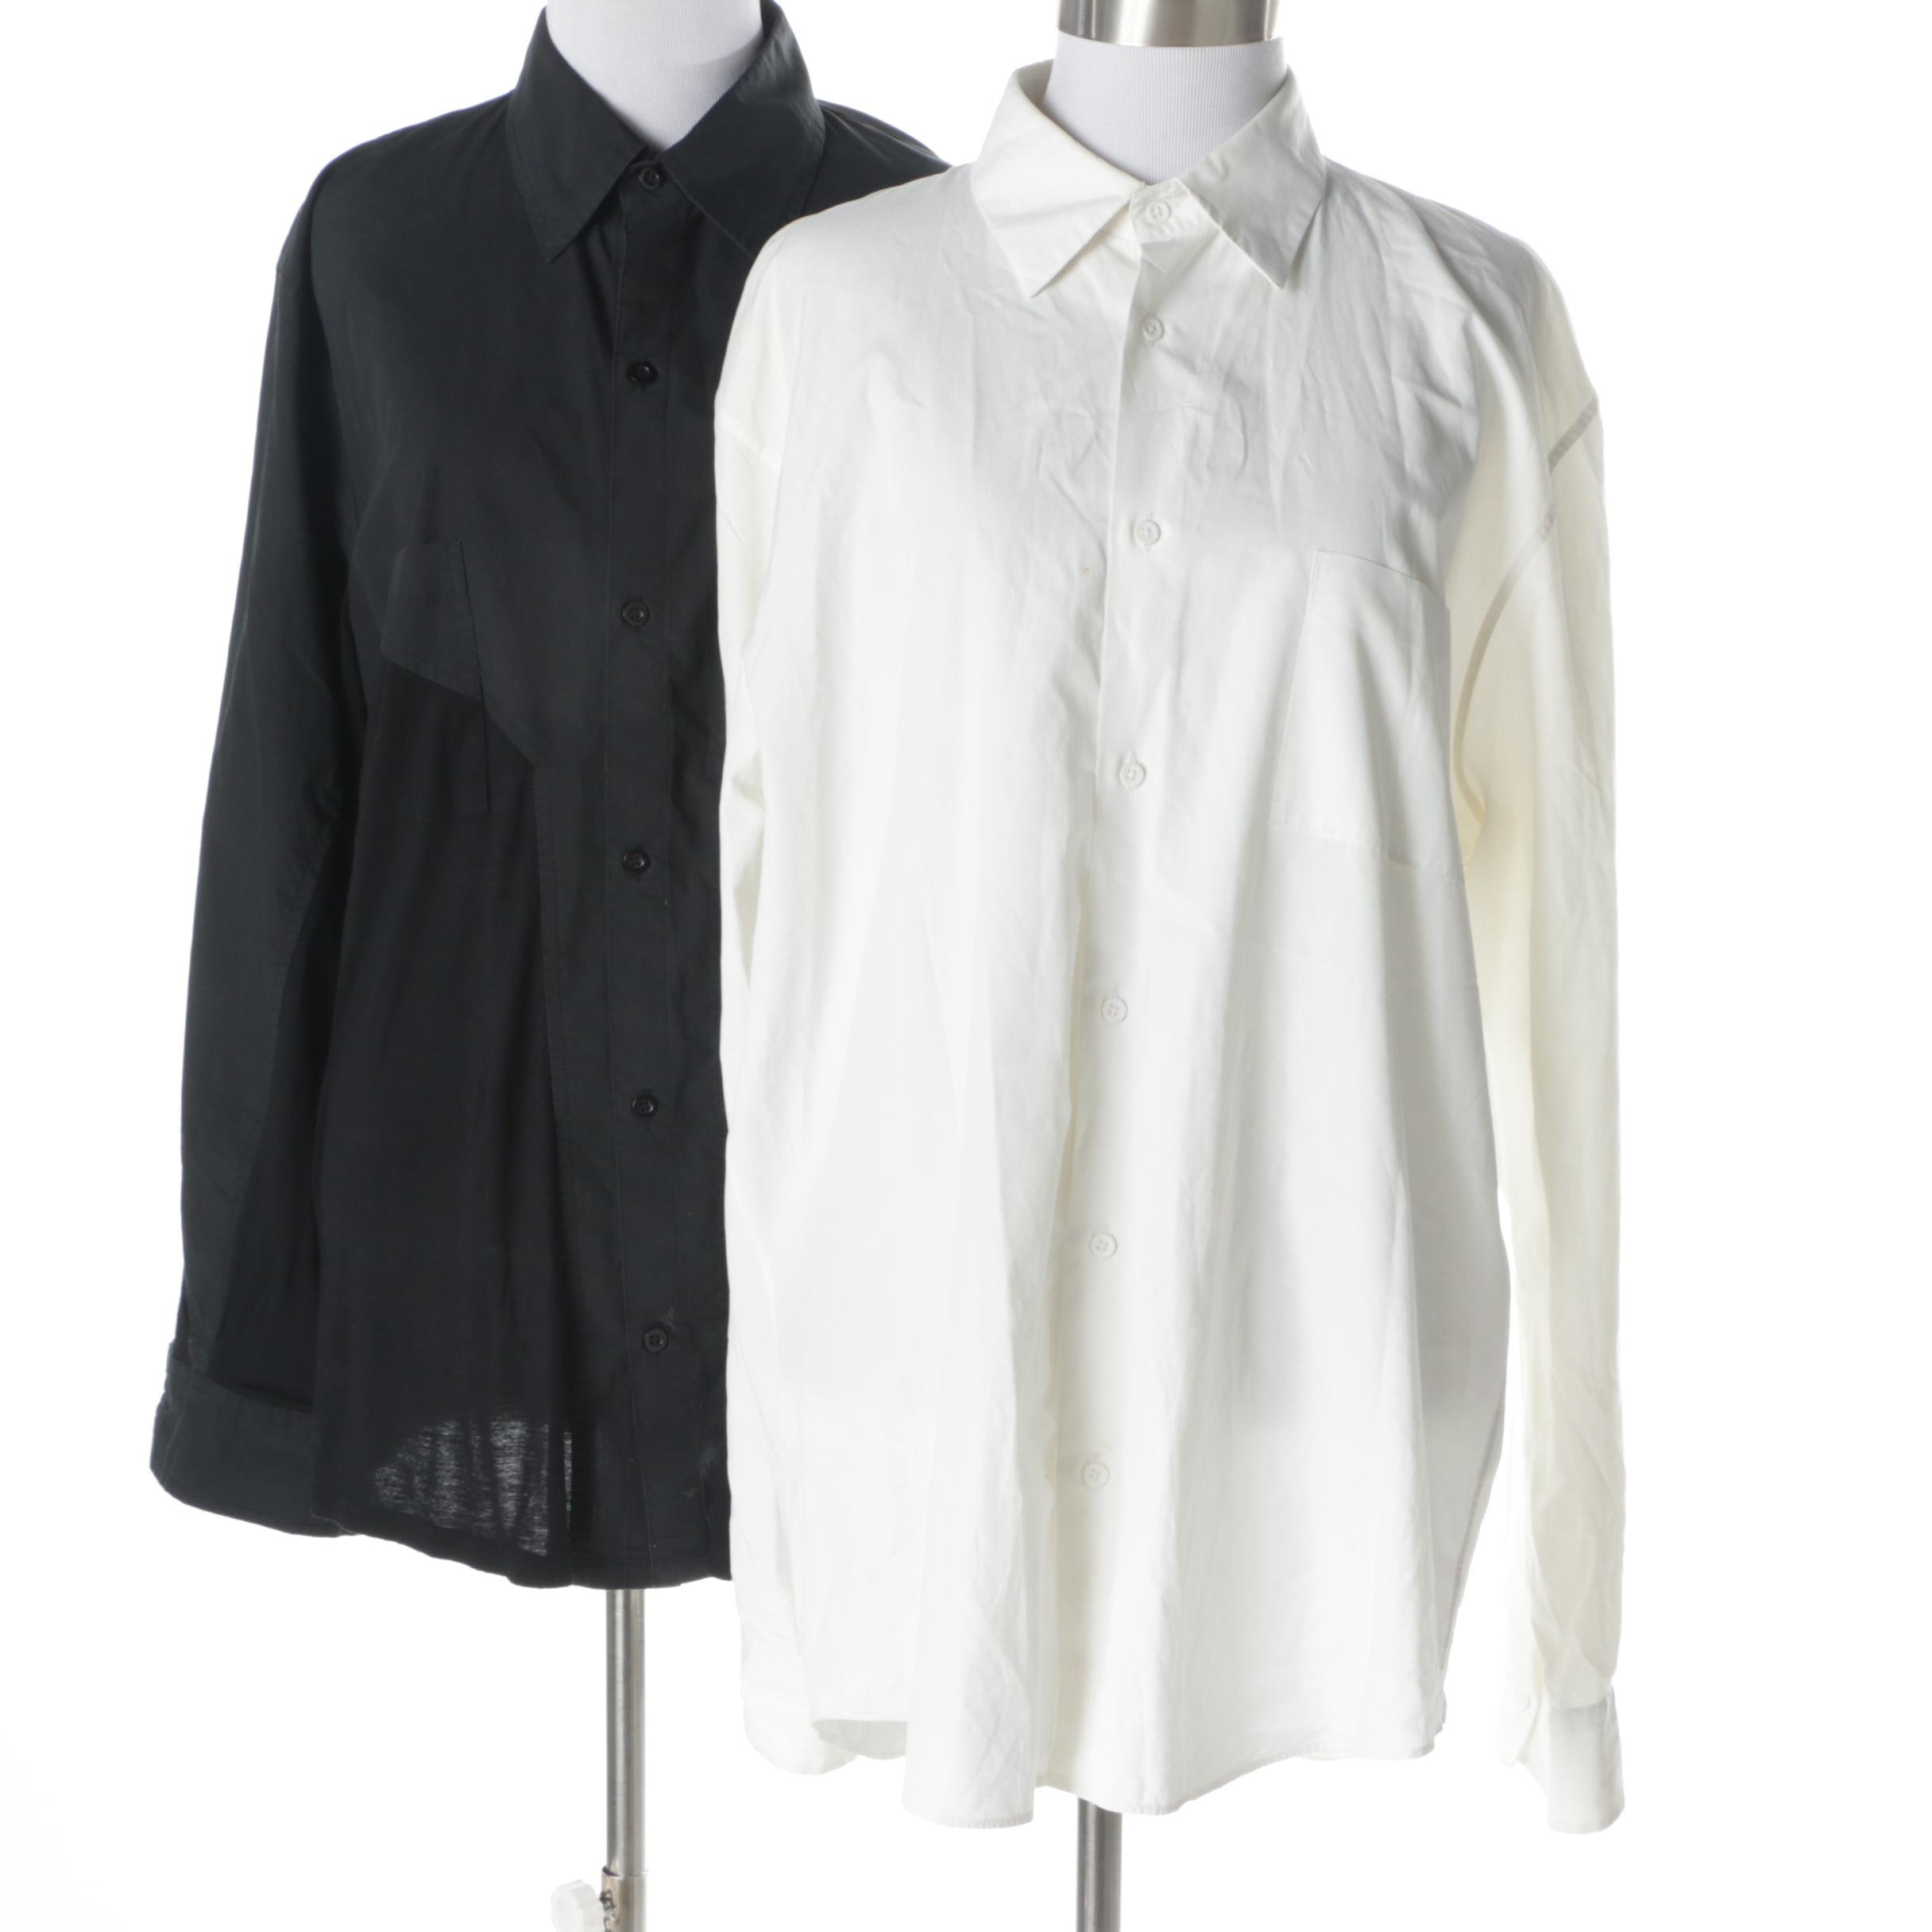 Jil Sander and Rochambeau Button Up Blouses with Collars